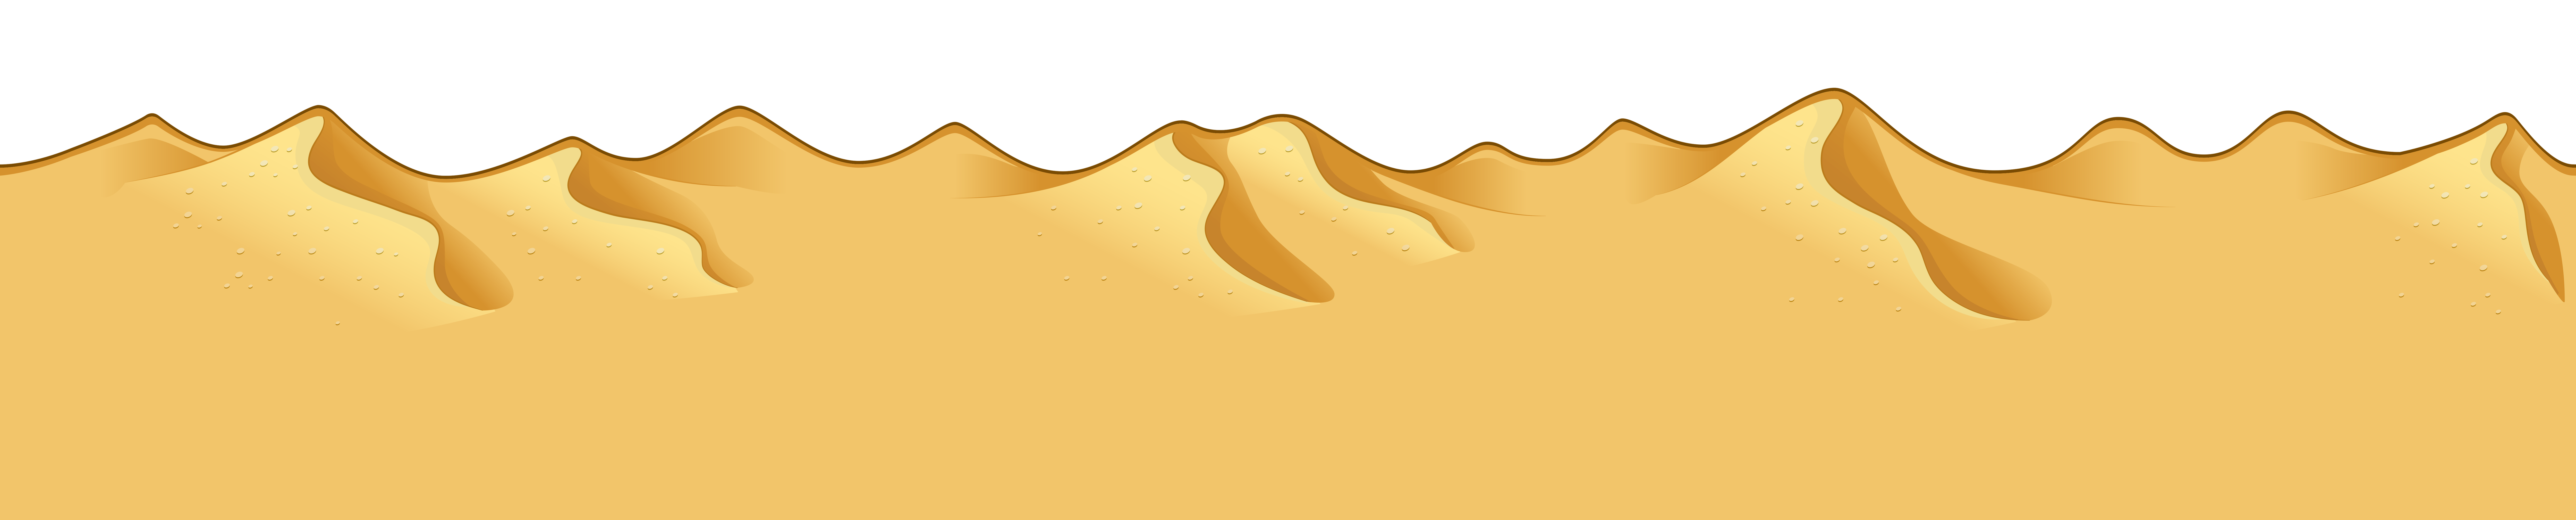 Sand PNG - Sand Art PNG